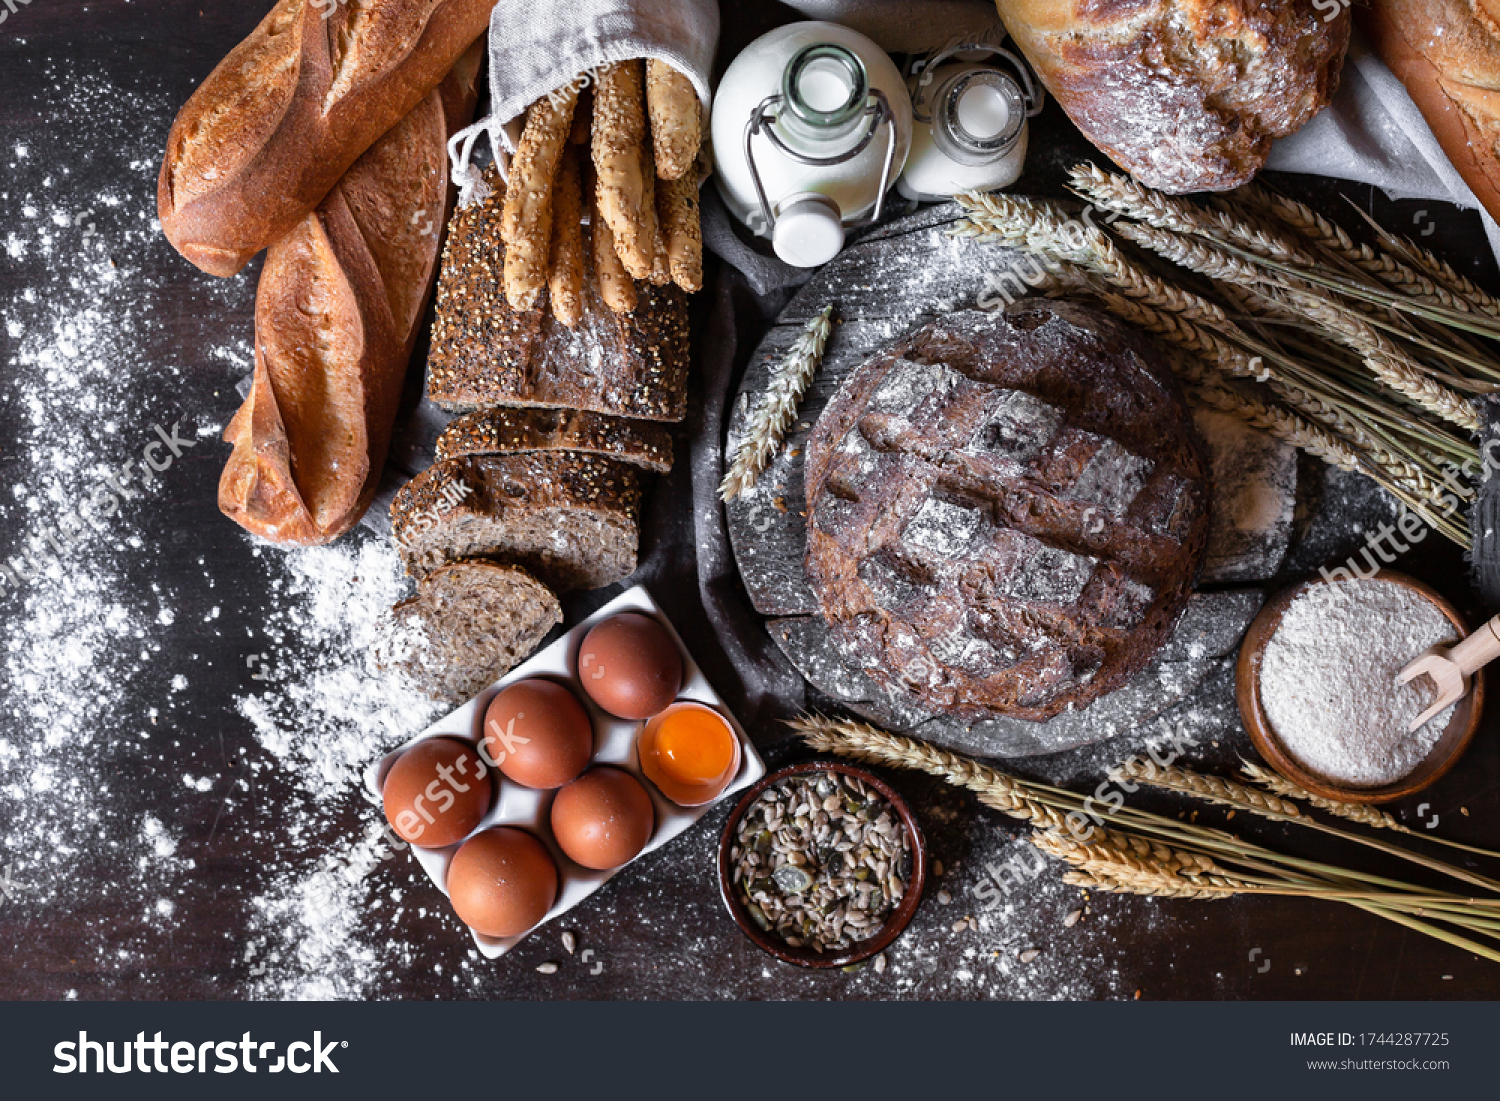 Concept of homemade bread, natural farm products, domestic production. Healthy and tasty organic food. Freshly baked round whole grain bread. Top view flat lay, dark black background.